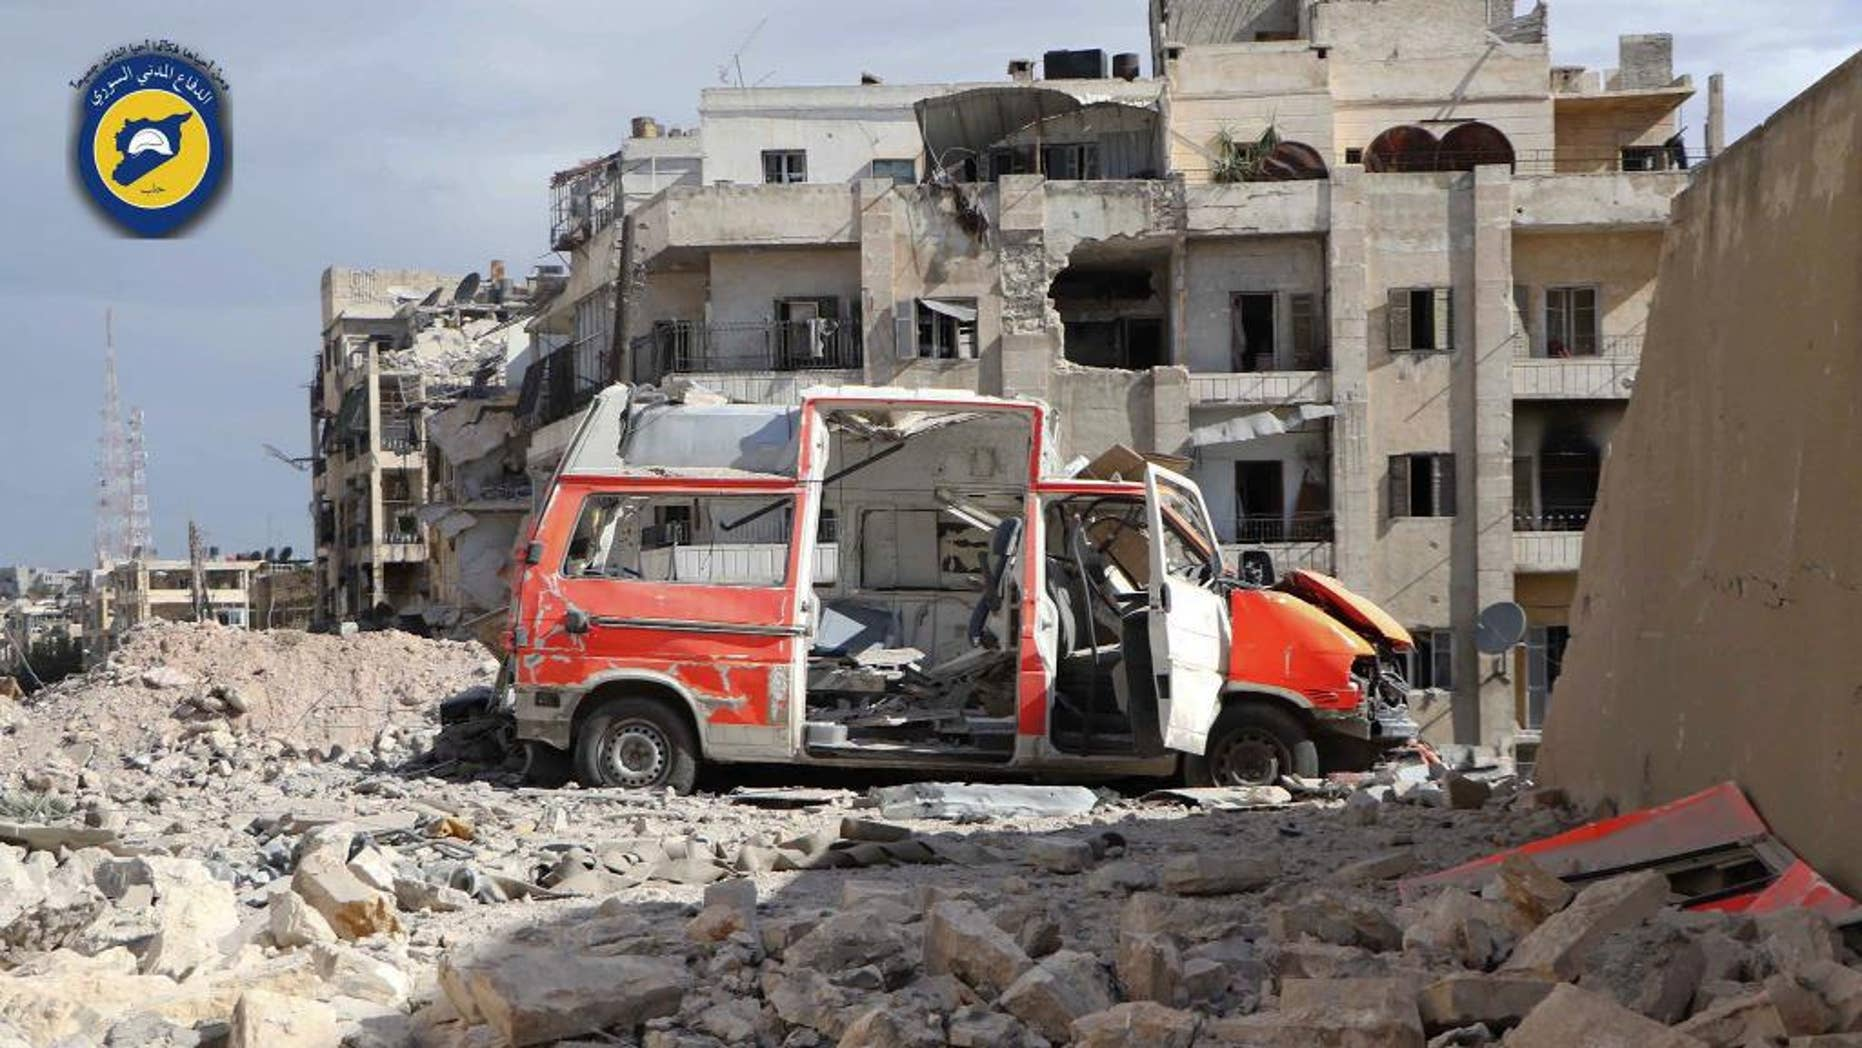 Sept. 23, 2016: In this photo provided by the Syrian Civil Defense group known as the White Helmets, a destroyed ambulance is seen outside the Syrian Civil Defense main center after airstrikes in Ansari neighborhood in the rebel-held part of eastern Aleppo, Syria.